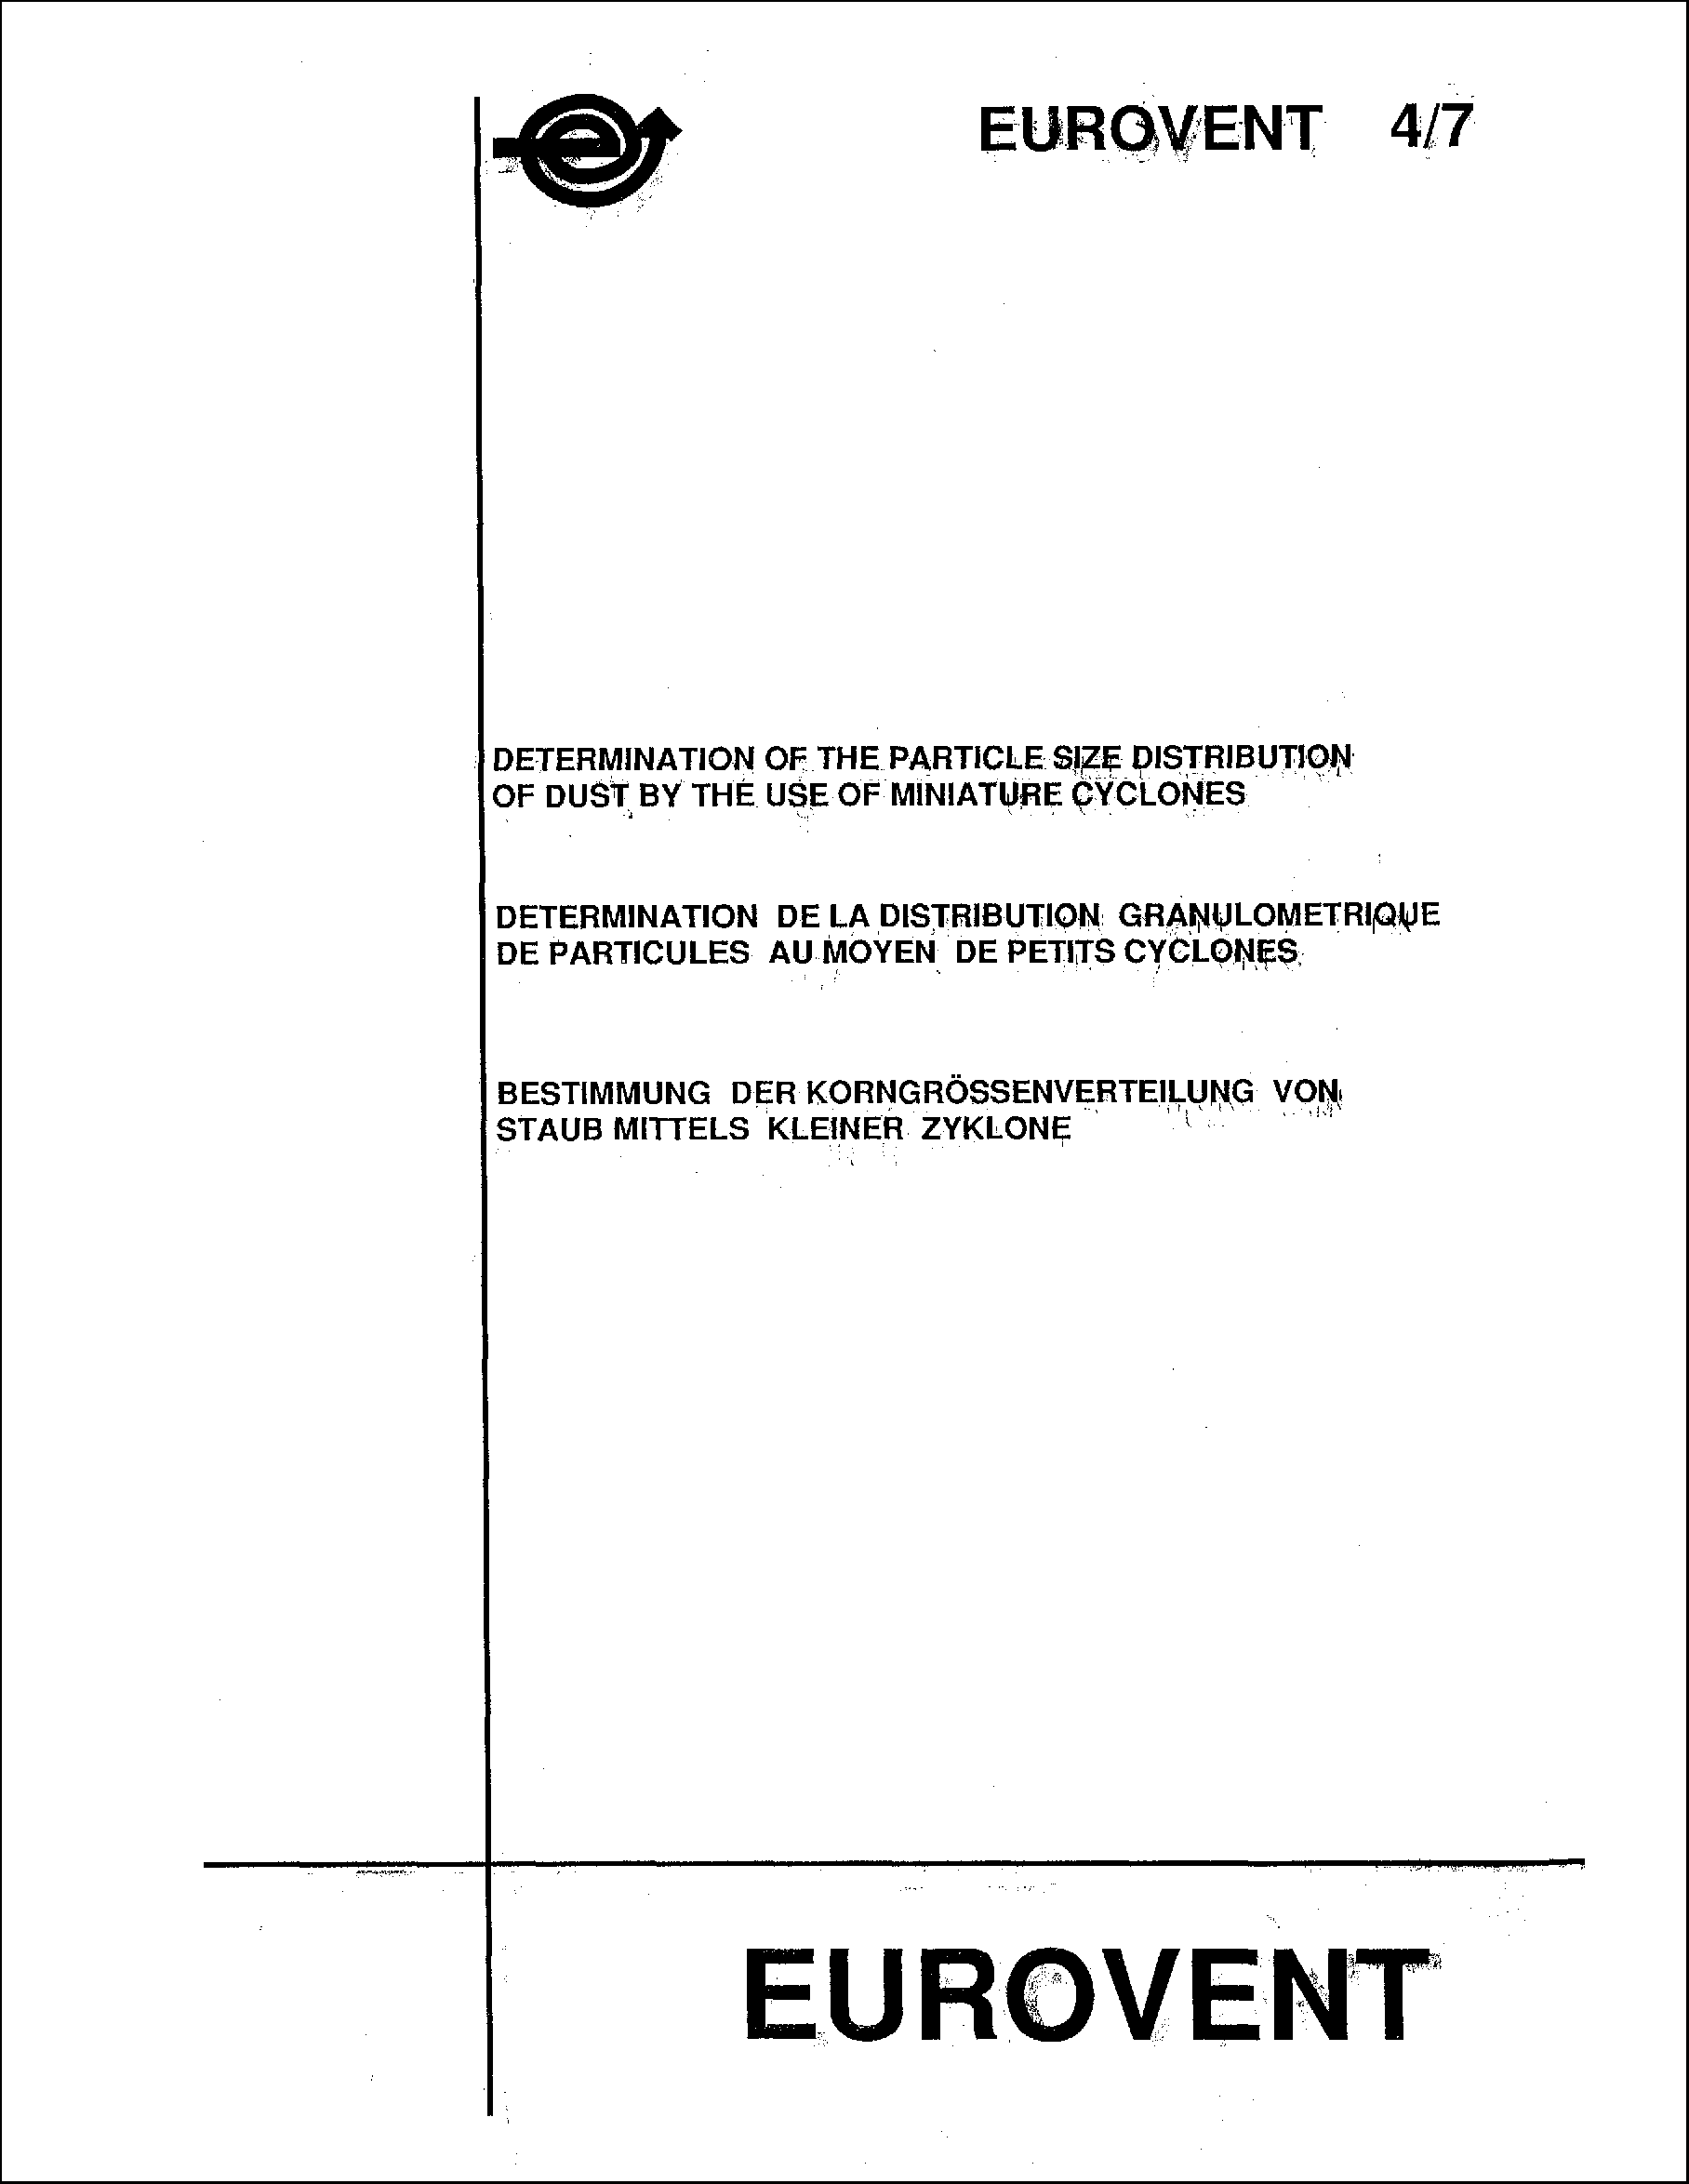 1991 - Determination of the particle size distribution of dust by the use of miniature cyclones